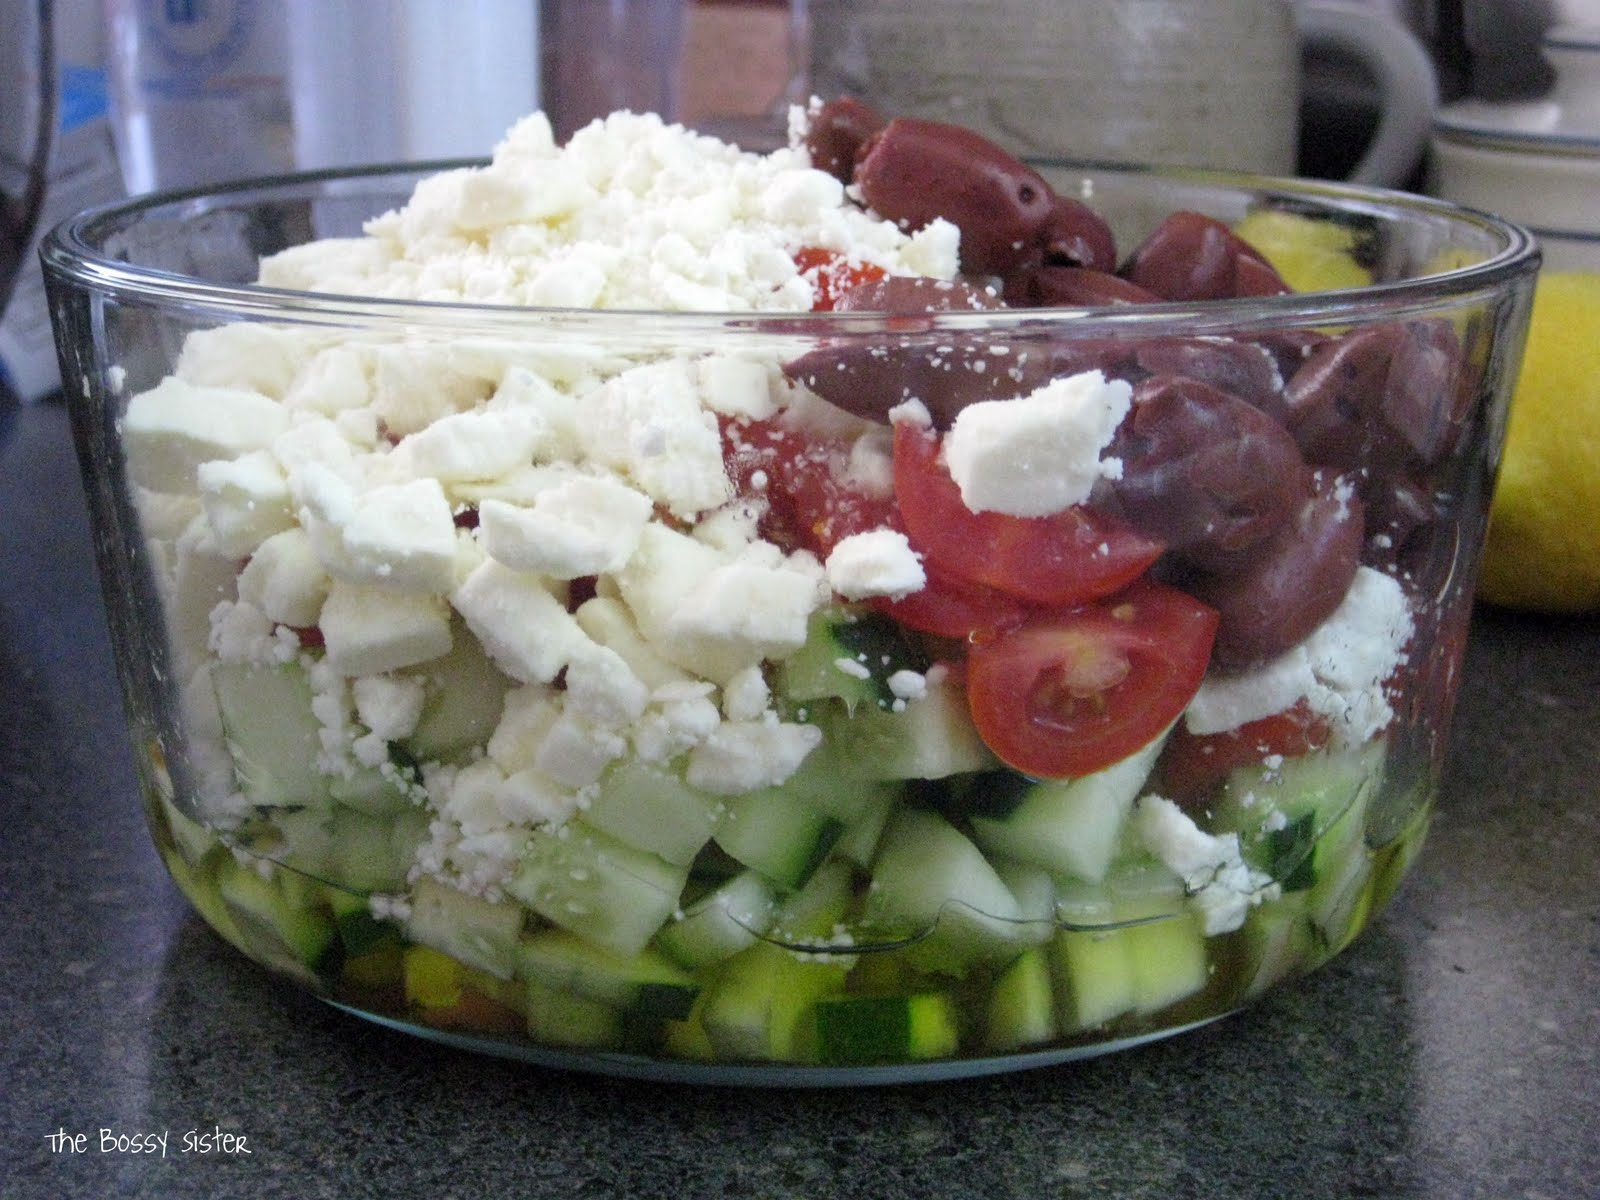 The Bossy Sister: Beat the Heat with a Cool Summer Salad